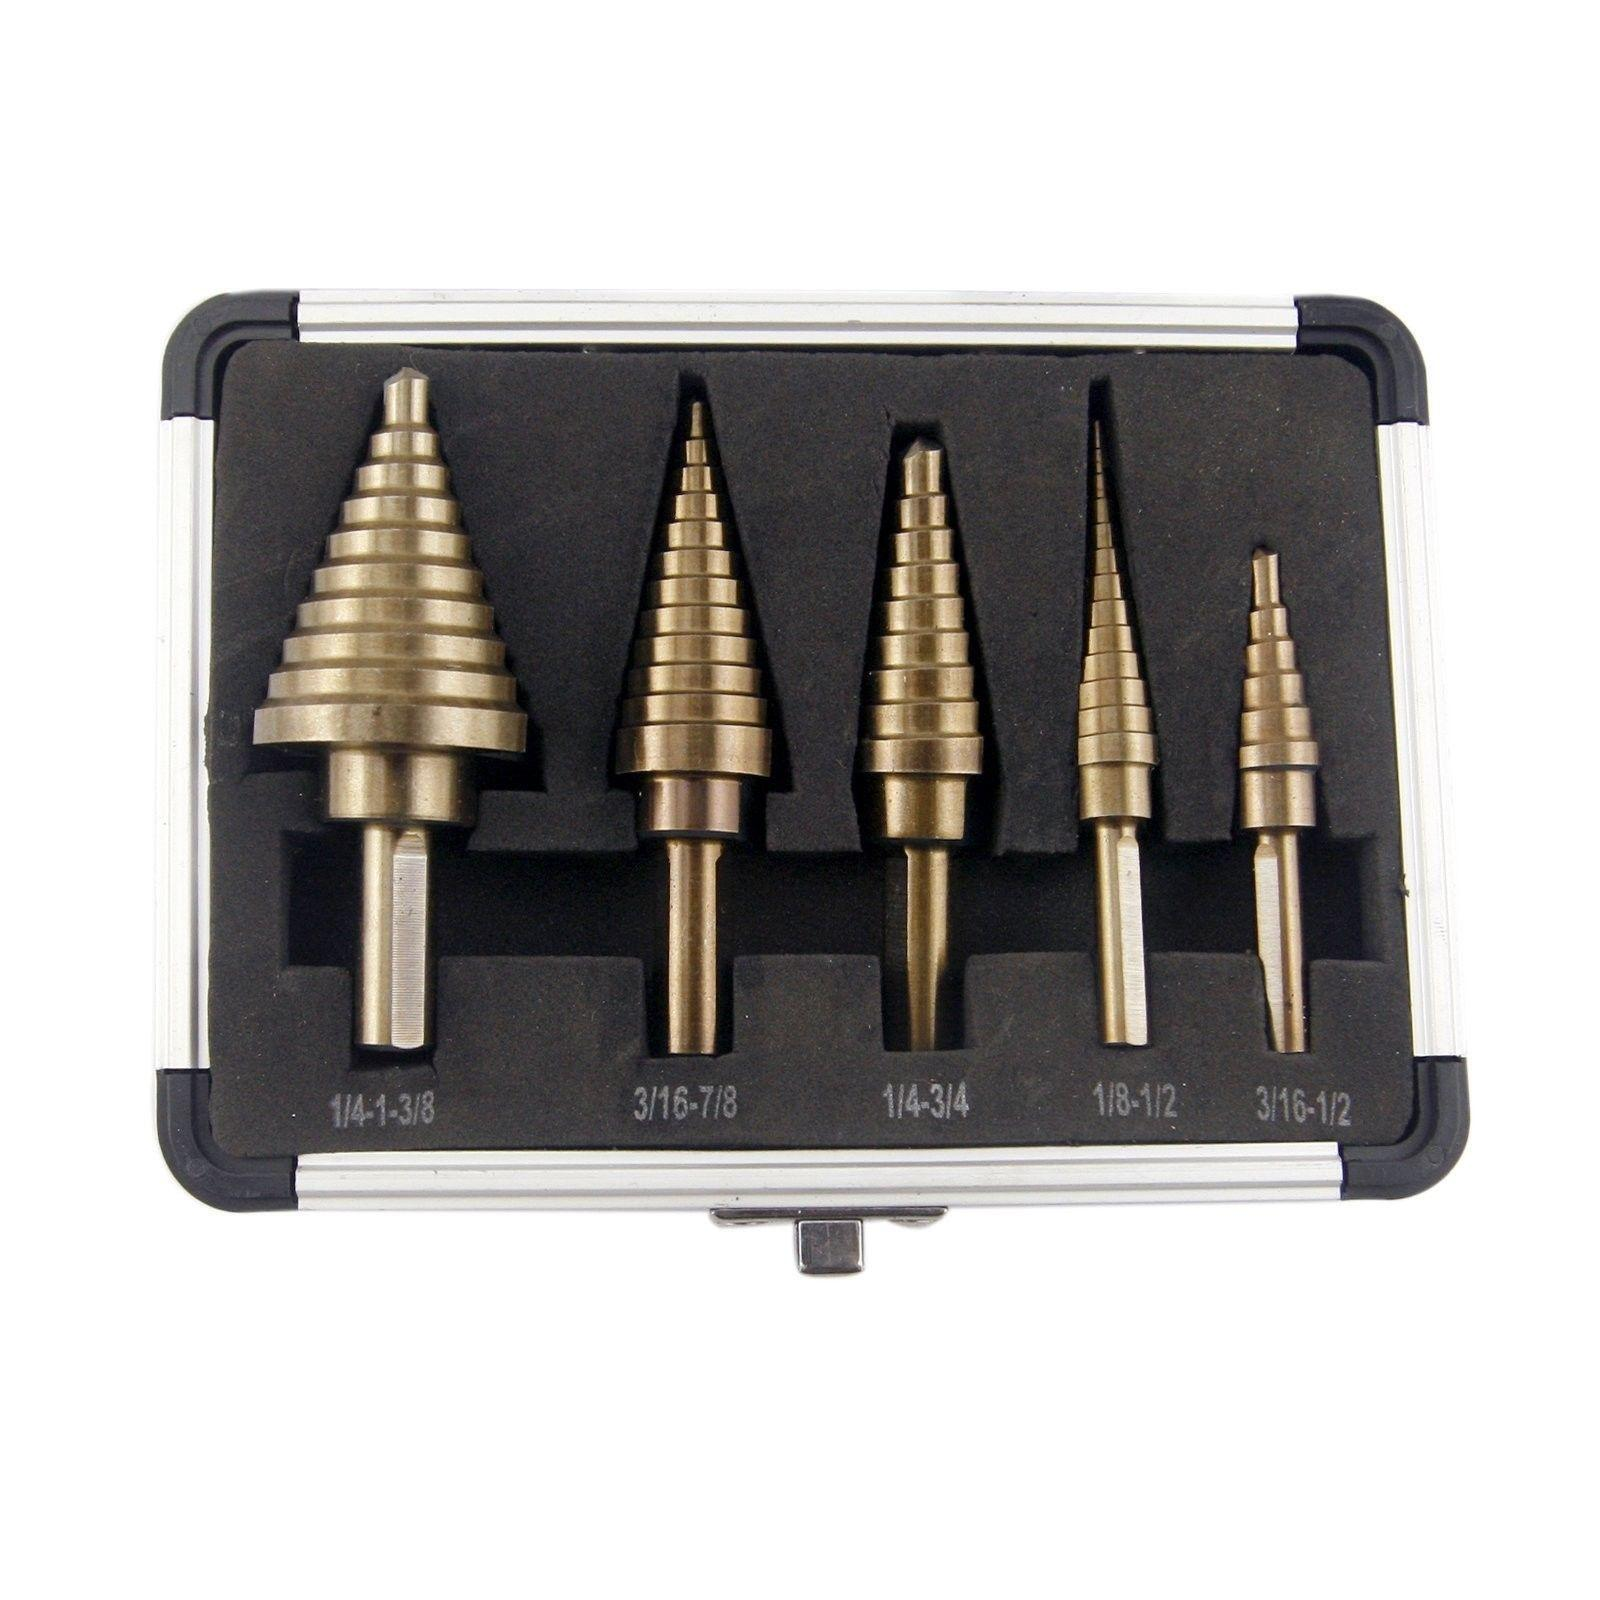 Hss industrial drill bits ebay co z 5pcs hss cobalt multiple hole 50 sizes step drill bit set with aluminum greentooth